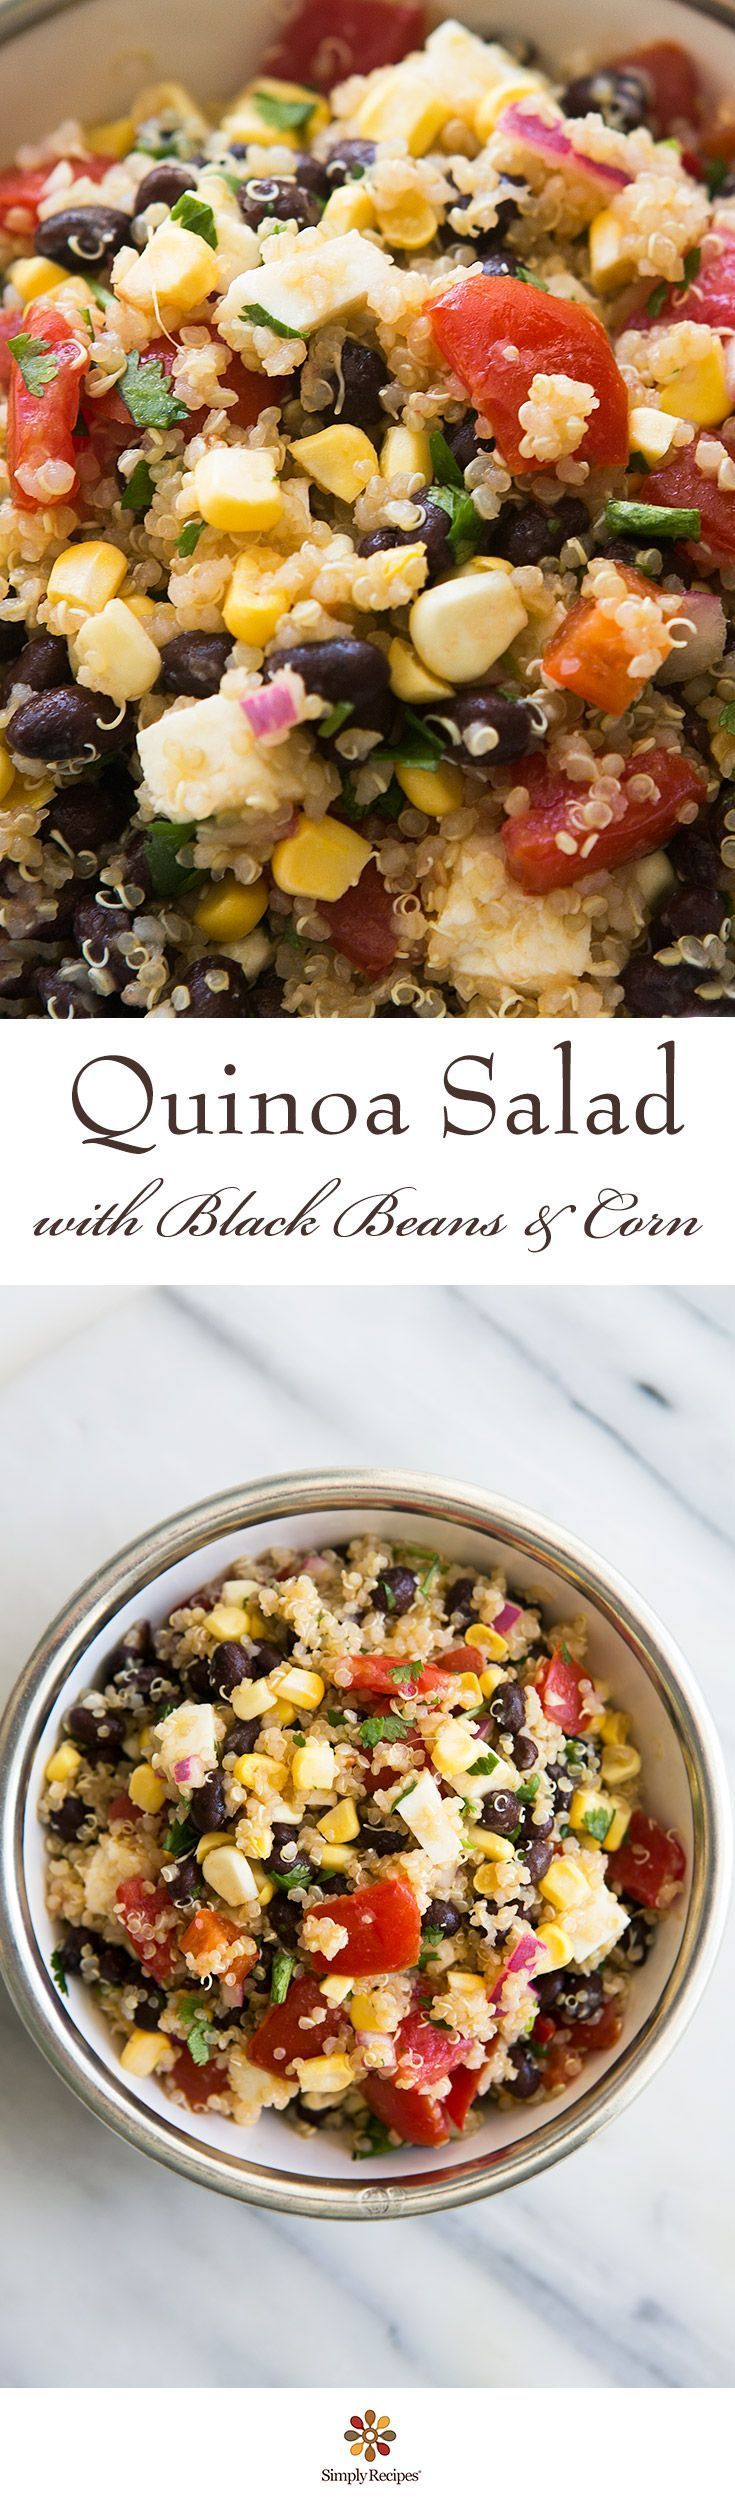 Mexican Quinoa Salad! WIth black beans, corn, fresh tomatoes, jalapeños, farmers cheese, lime juice, and cilantro. Easy, healthy, and delicious!!! ~ http://SimplyRecipes.com